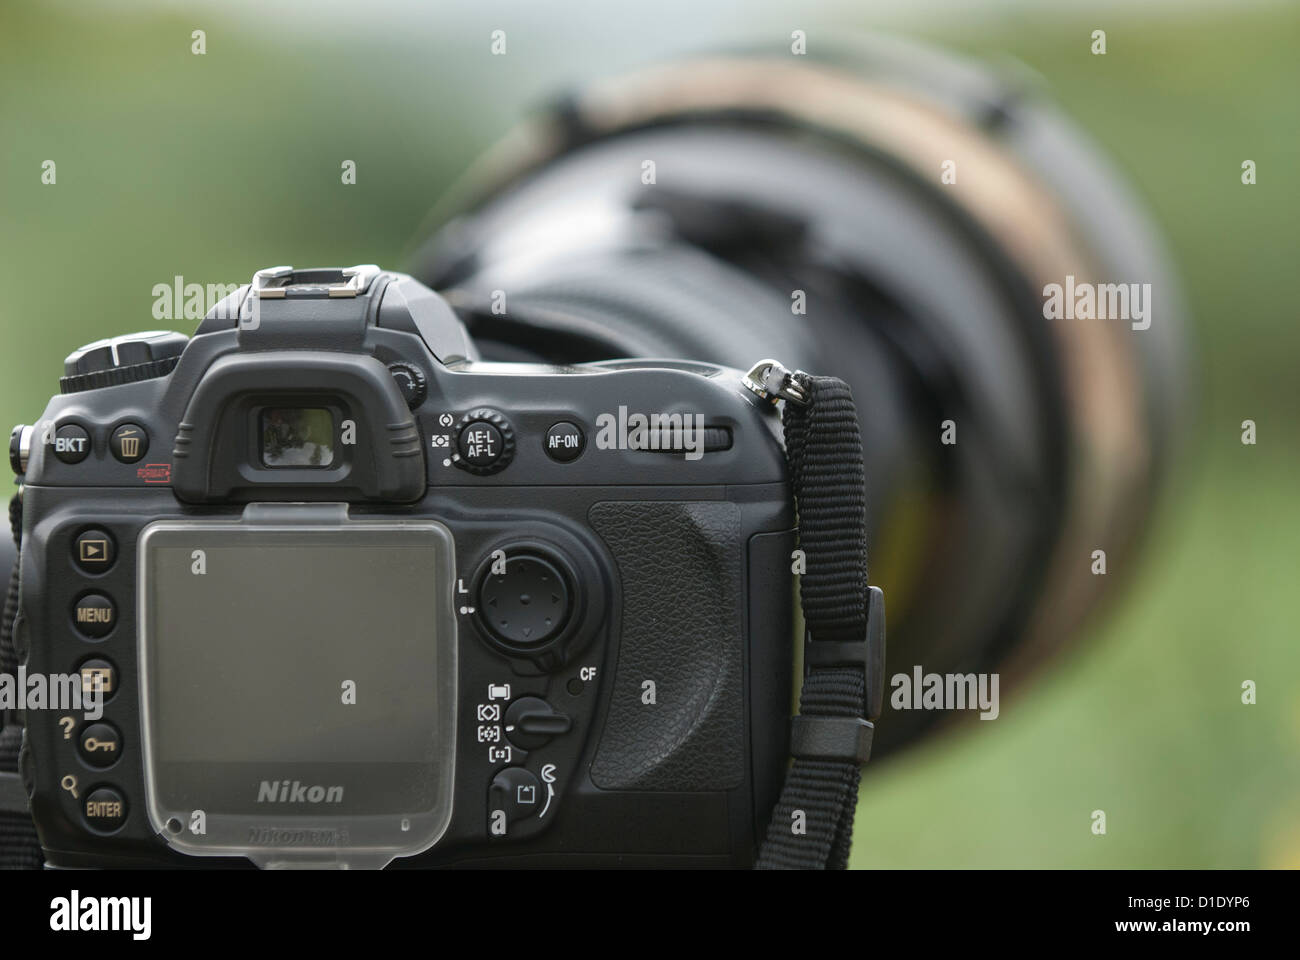 The 600mm f4 VR lens Nikon on a Nikon D200 camera used for sports and Bird Photography - Stock Image